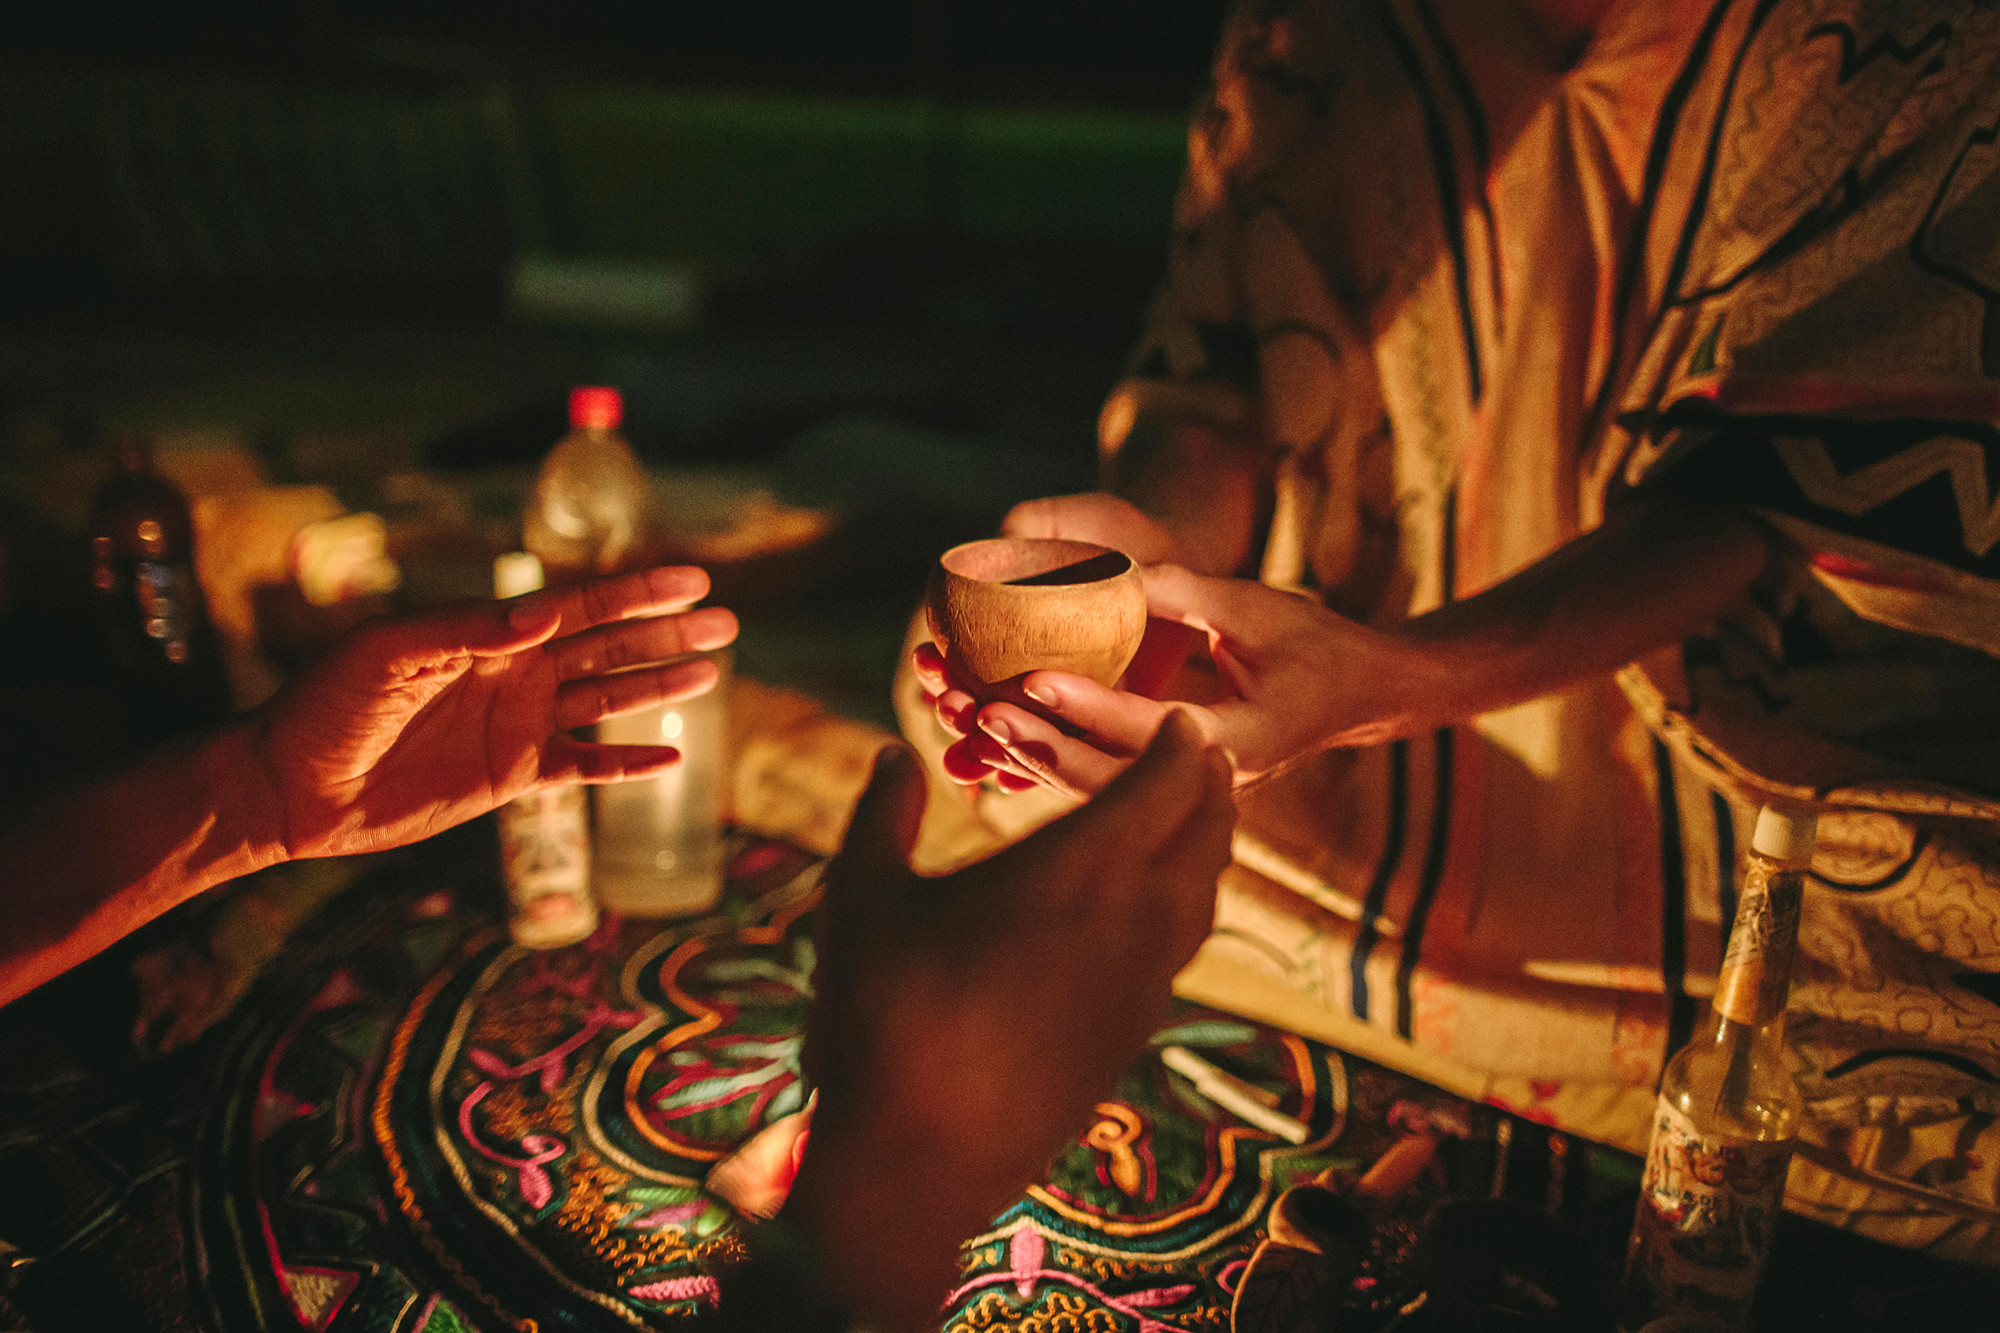 Gospel of ayahuasca: Hallucinogenic conjures up upright spiritual movement